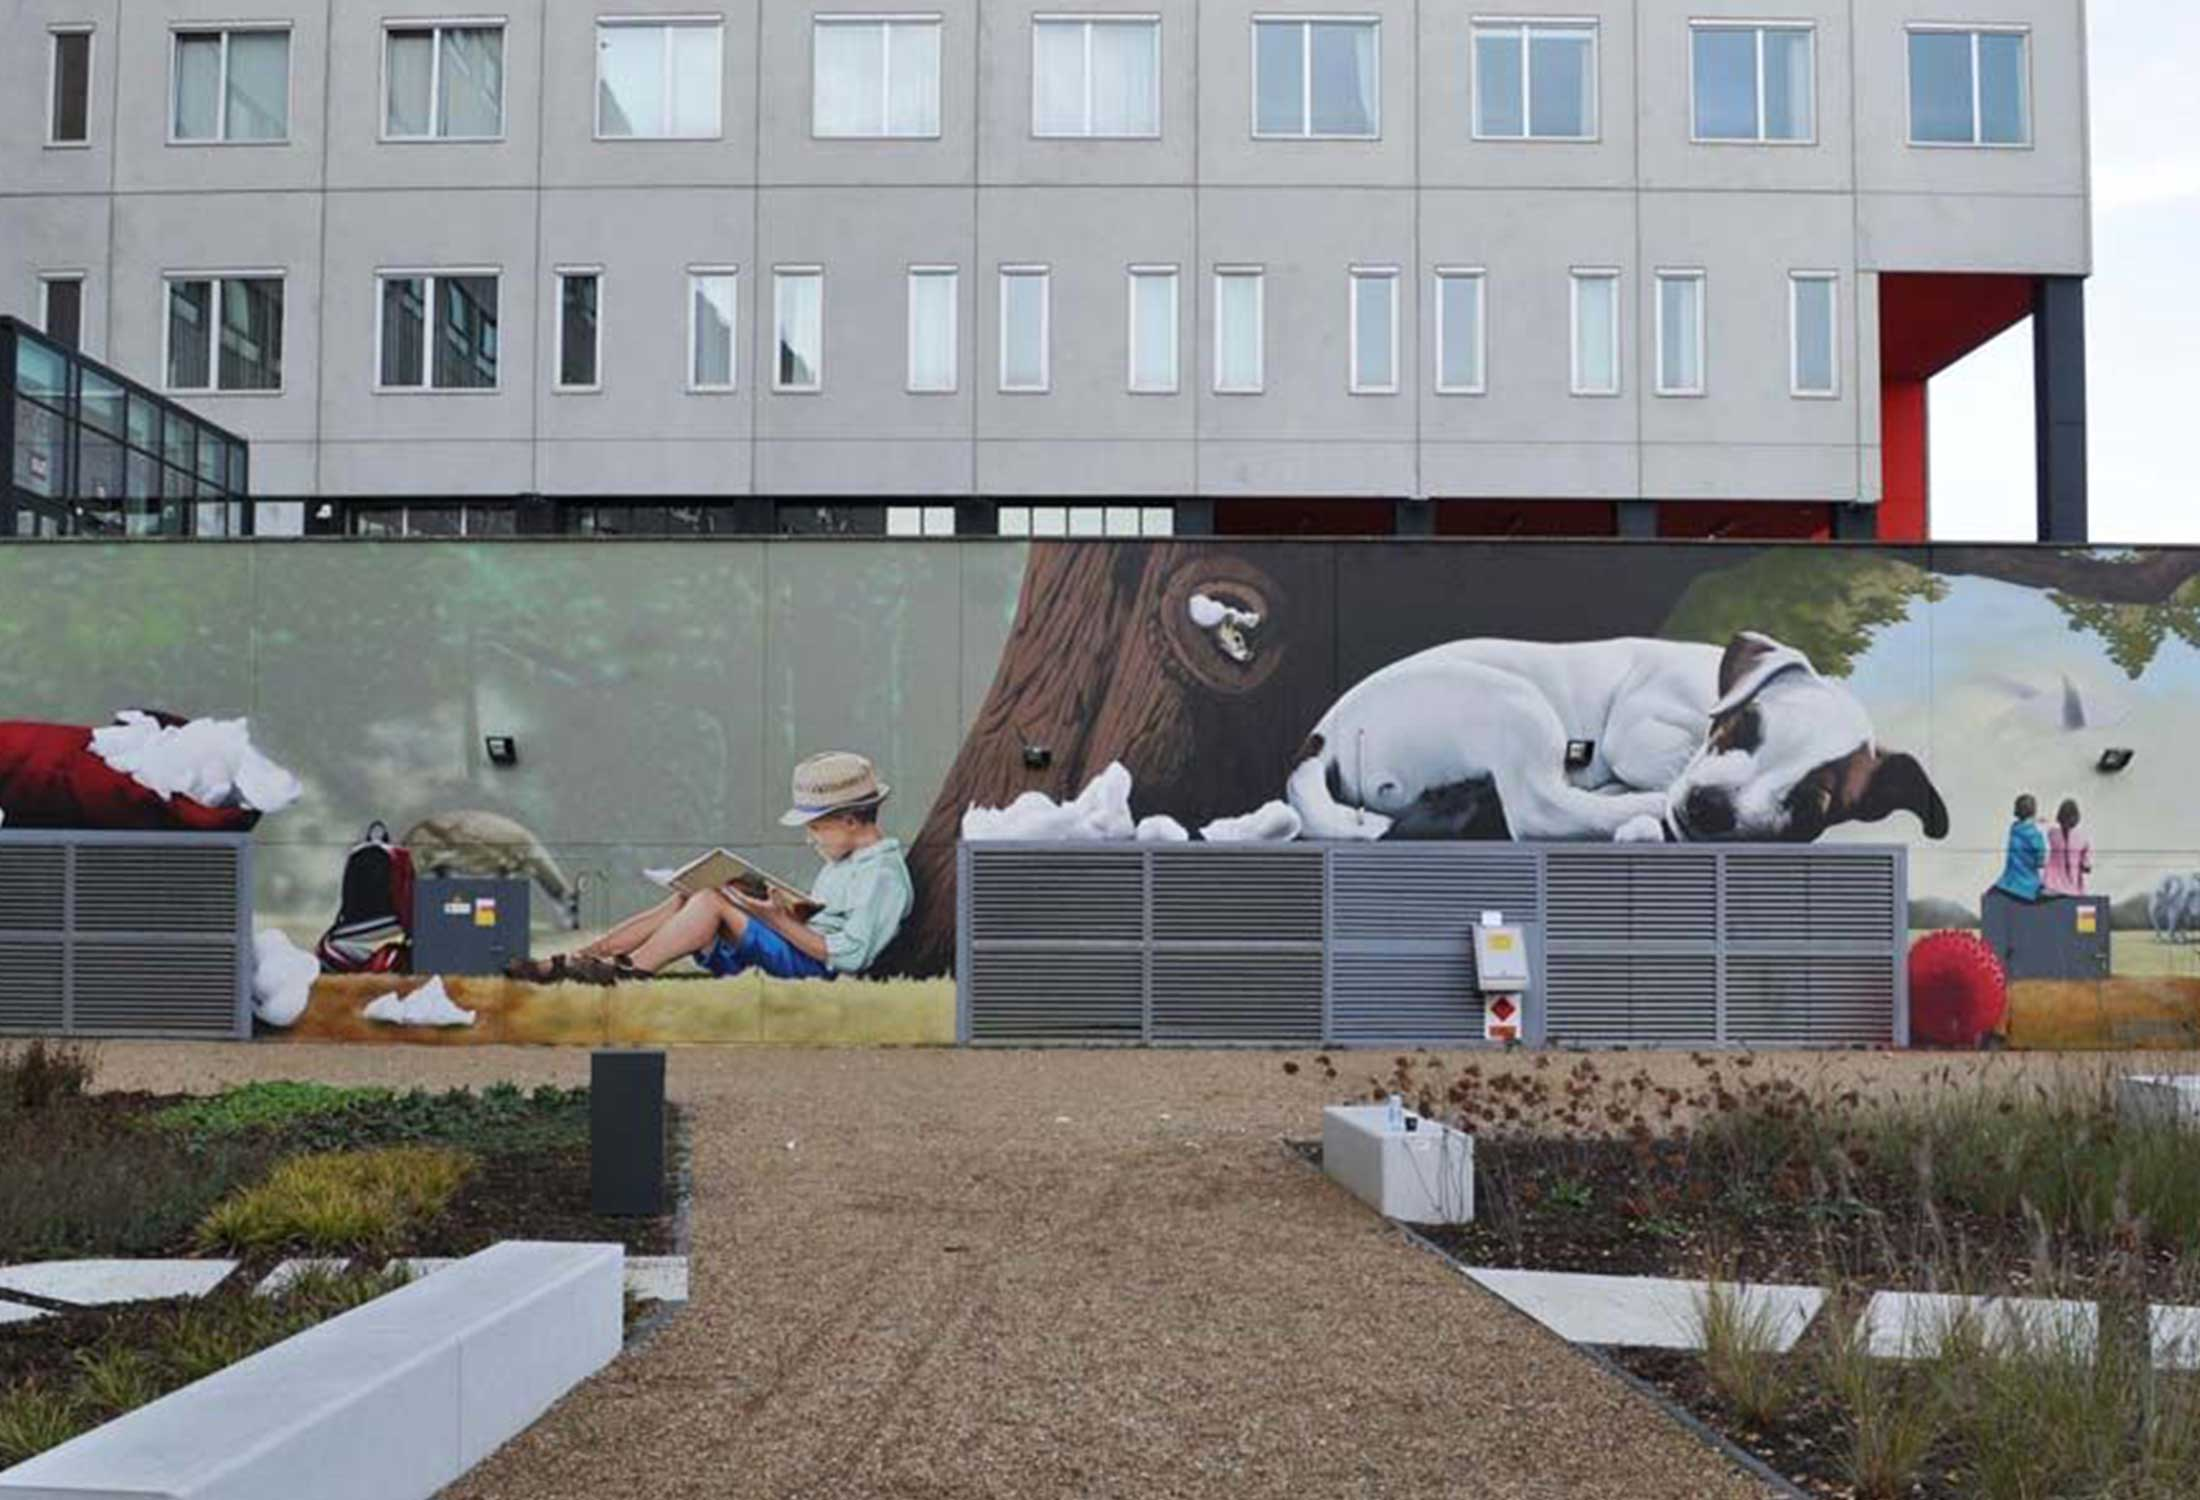 Bart Smeets used the magic of art in public places to transform an office space outdoor area into a relaxing retreat with a beautiful mural that boosts the value of the rental property